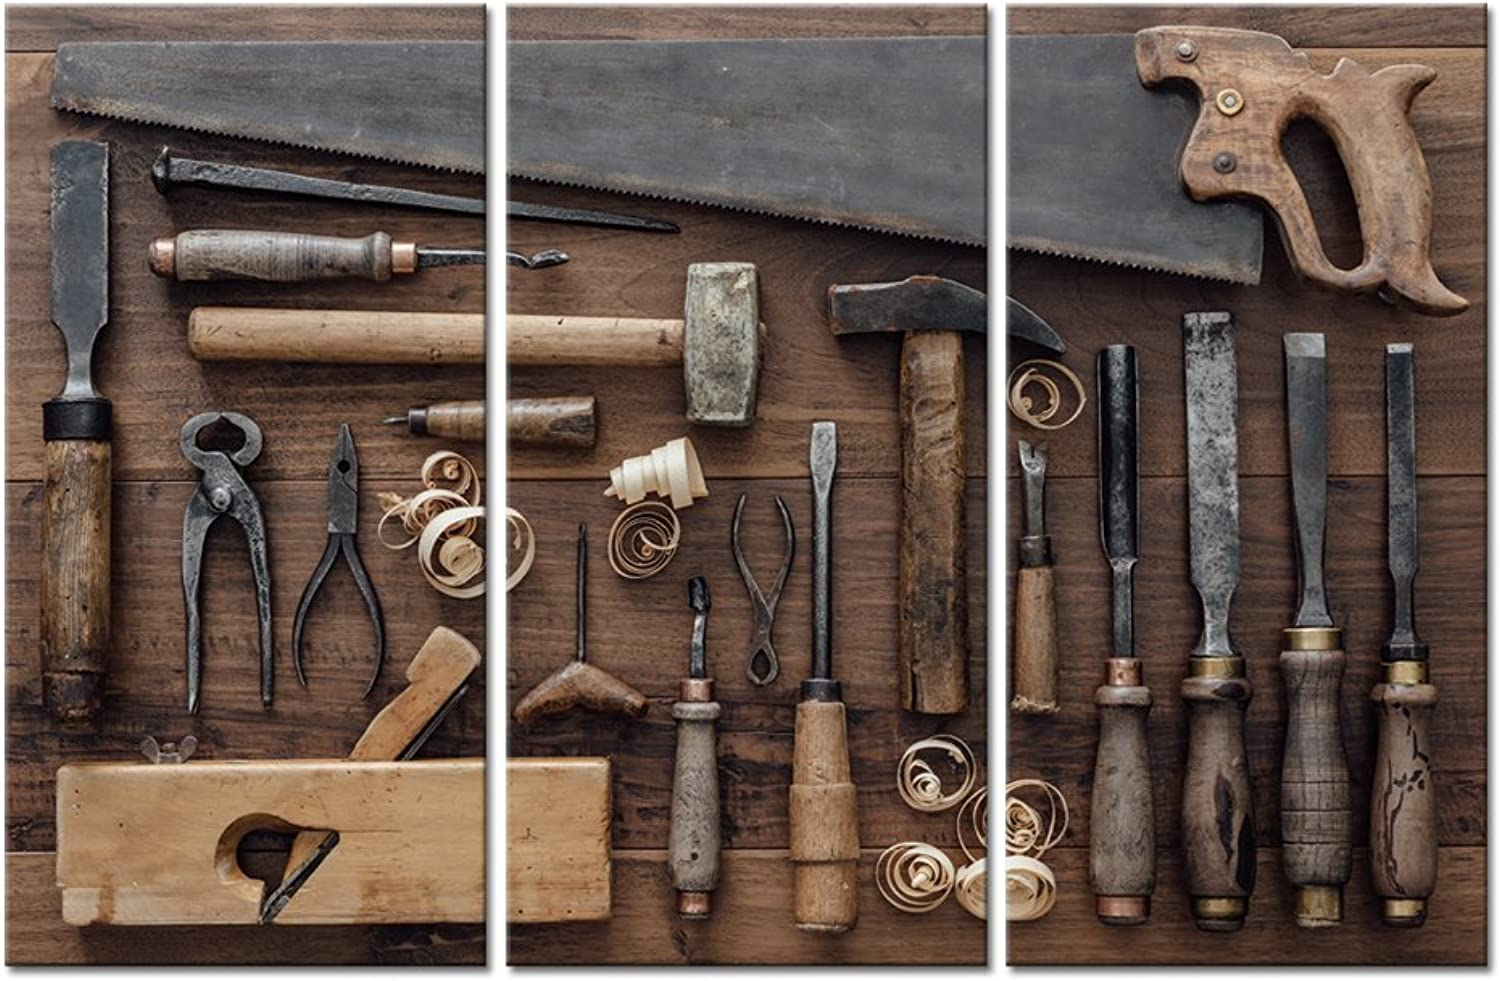 LevvArts - 3 Piece Wall Art Carpentry Tools Collection Vintage Picture Print on Canvas Cowboy Craftsmanship Poster Print Western Wall Decor